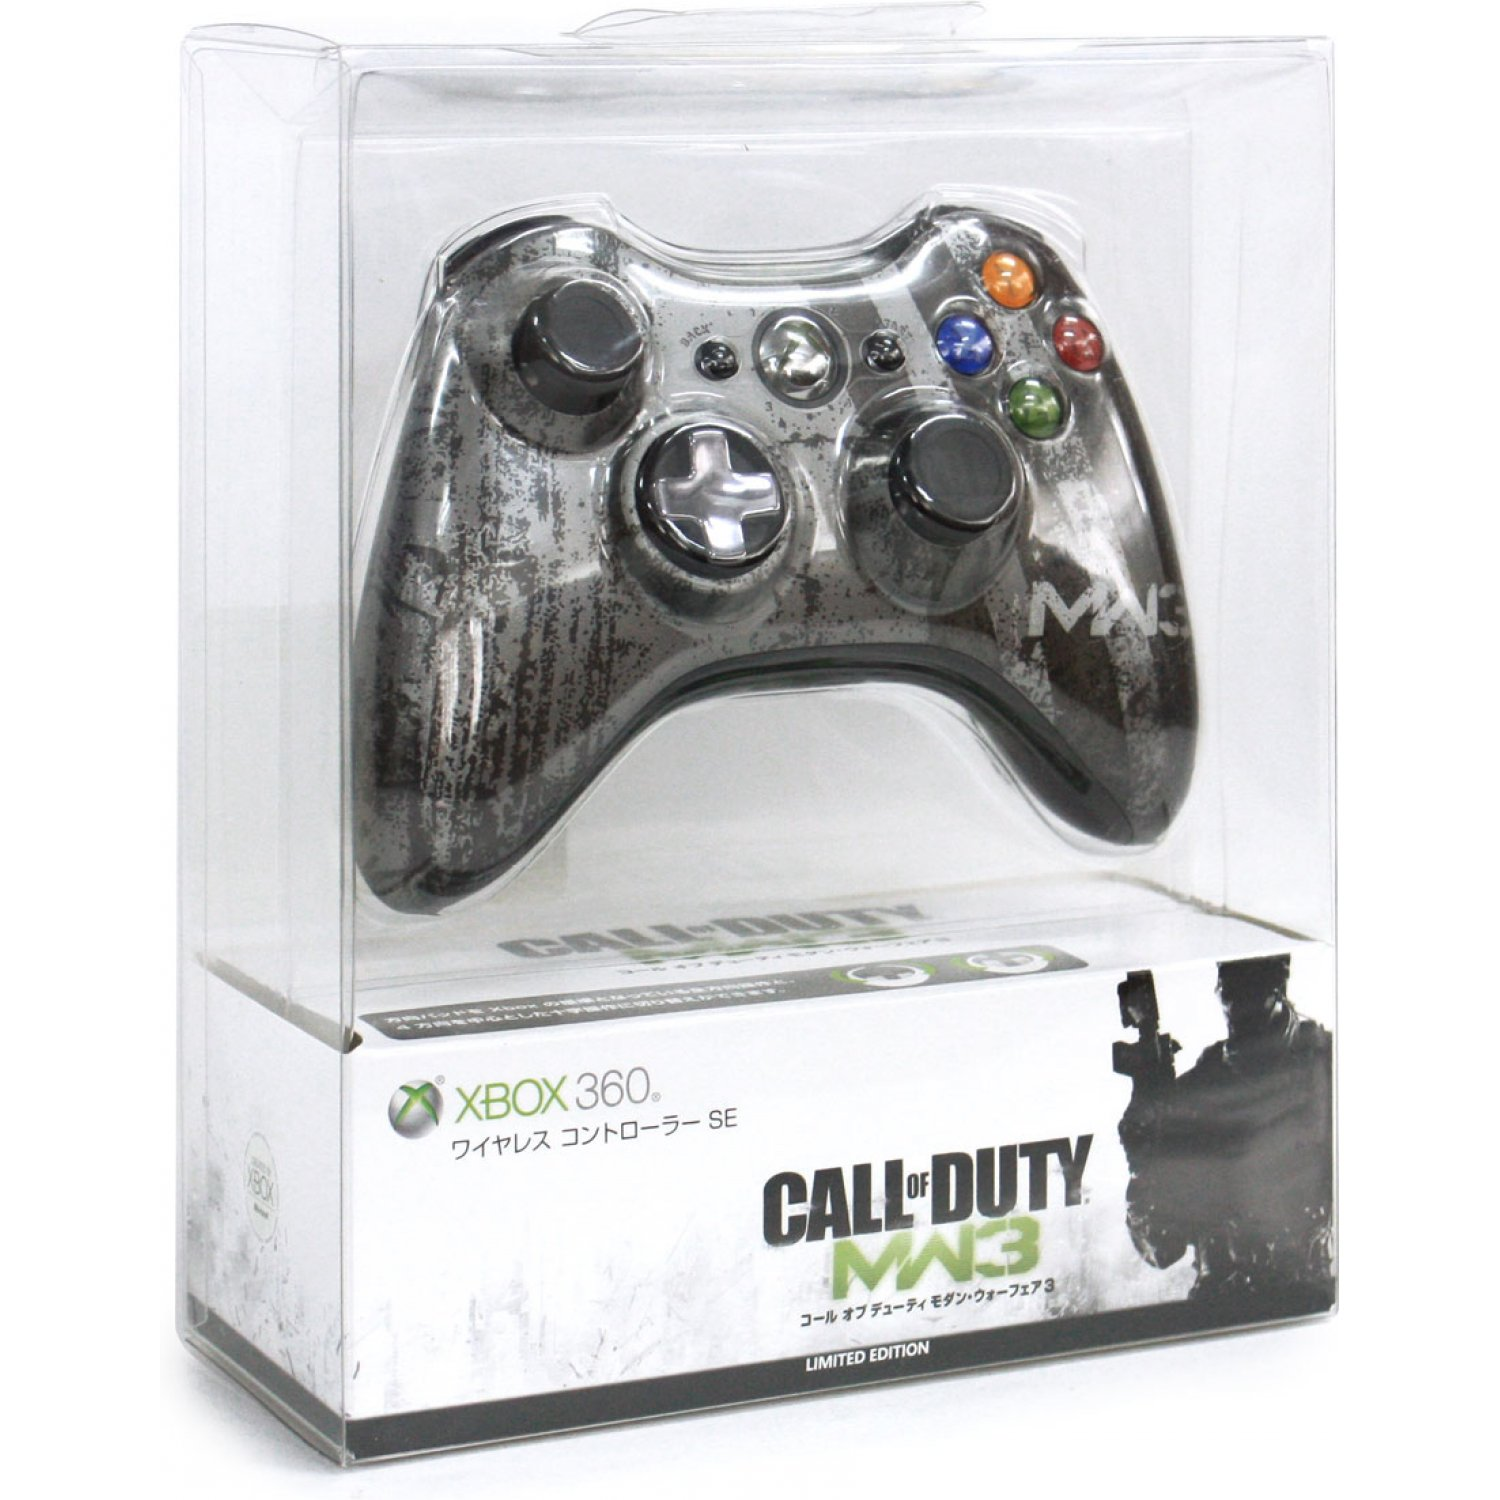 Xbox 360 Wireless Call of Duty Modern Warfare 3